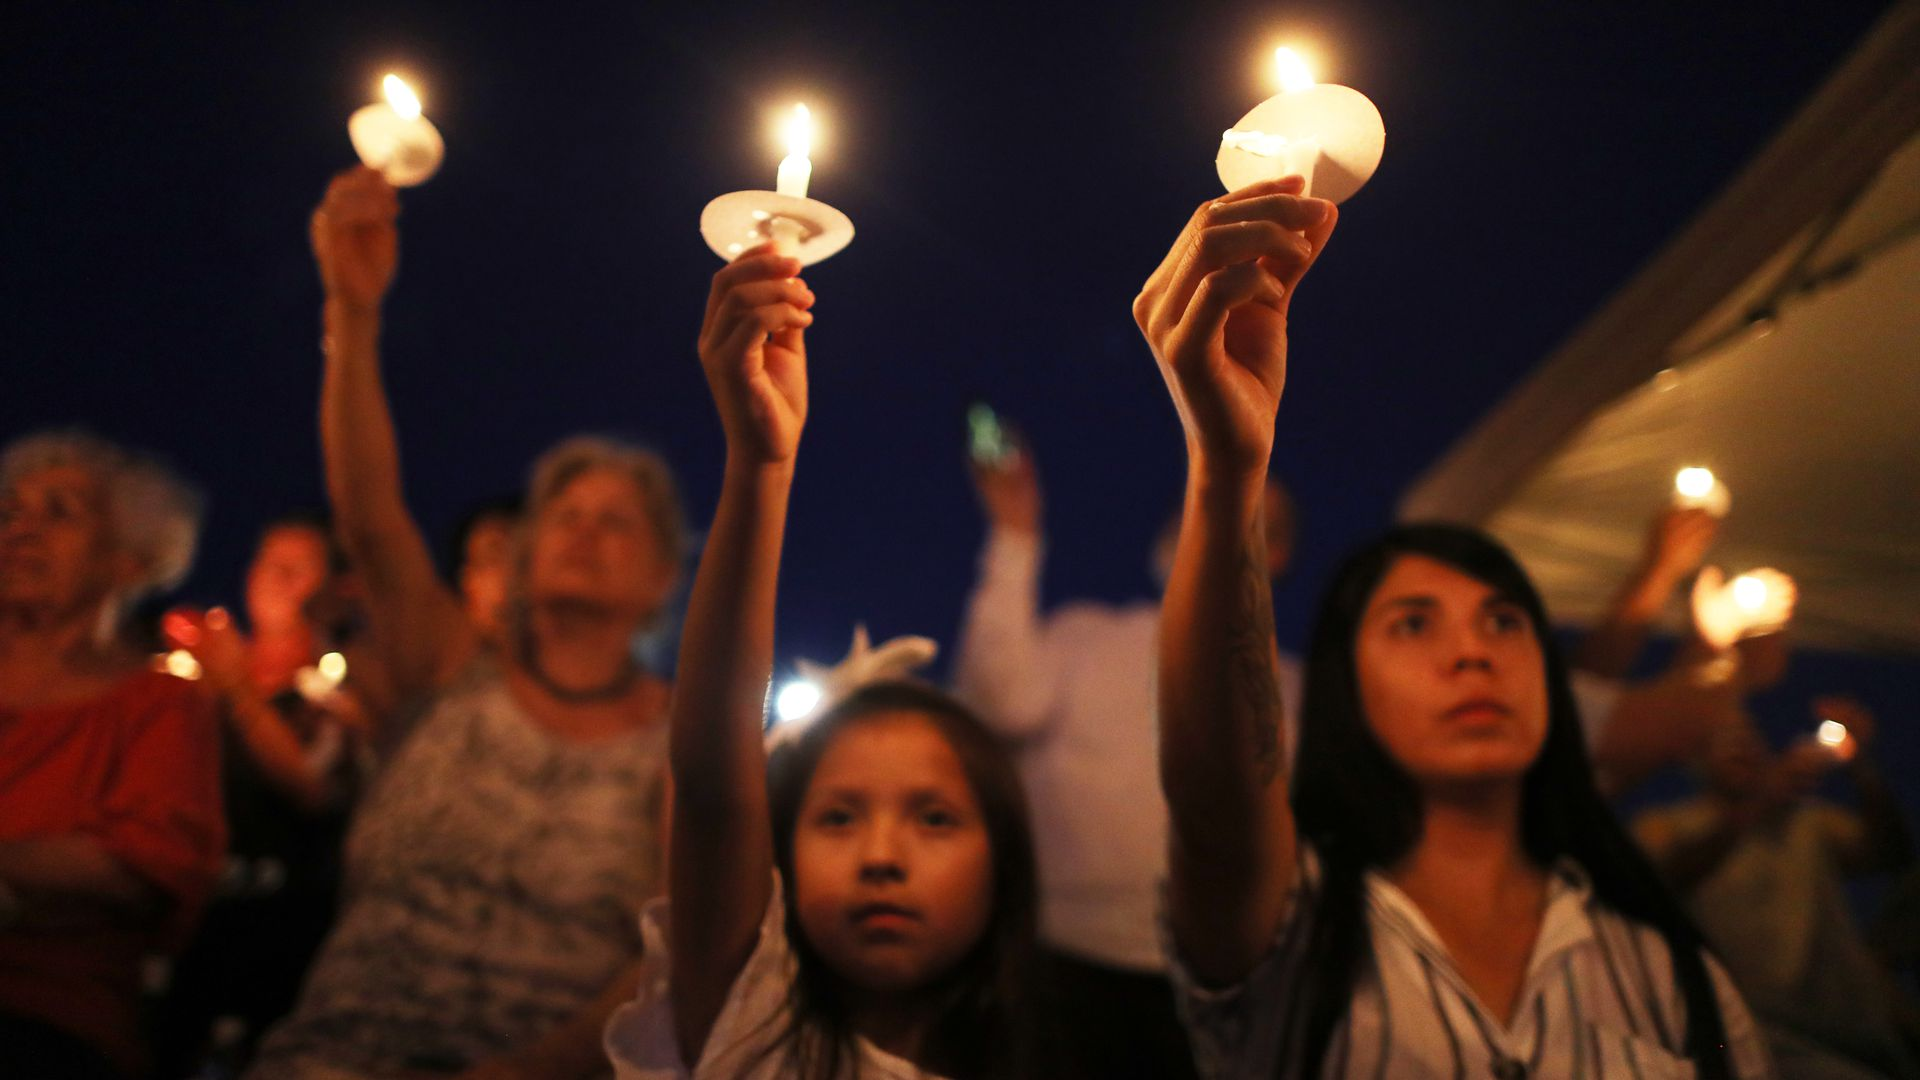 Mourners holding up candles at a vigil for those lost in El Paso.